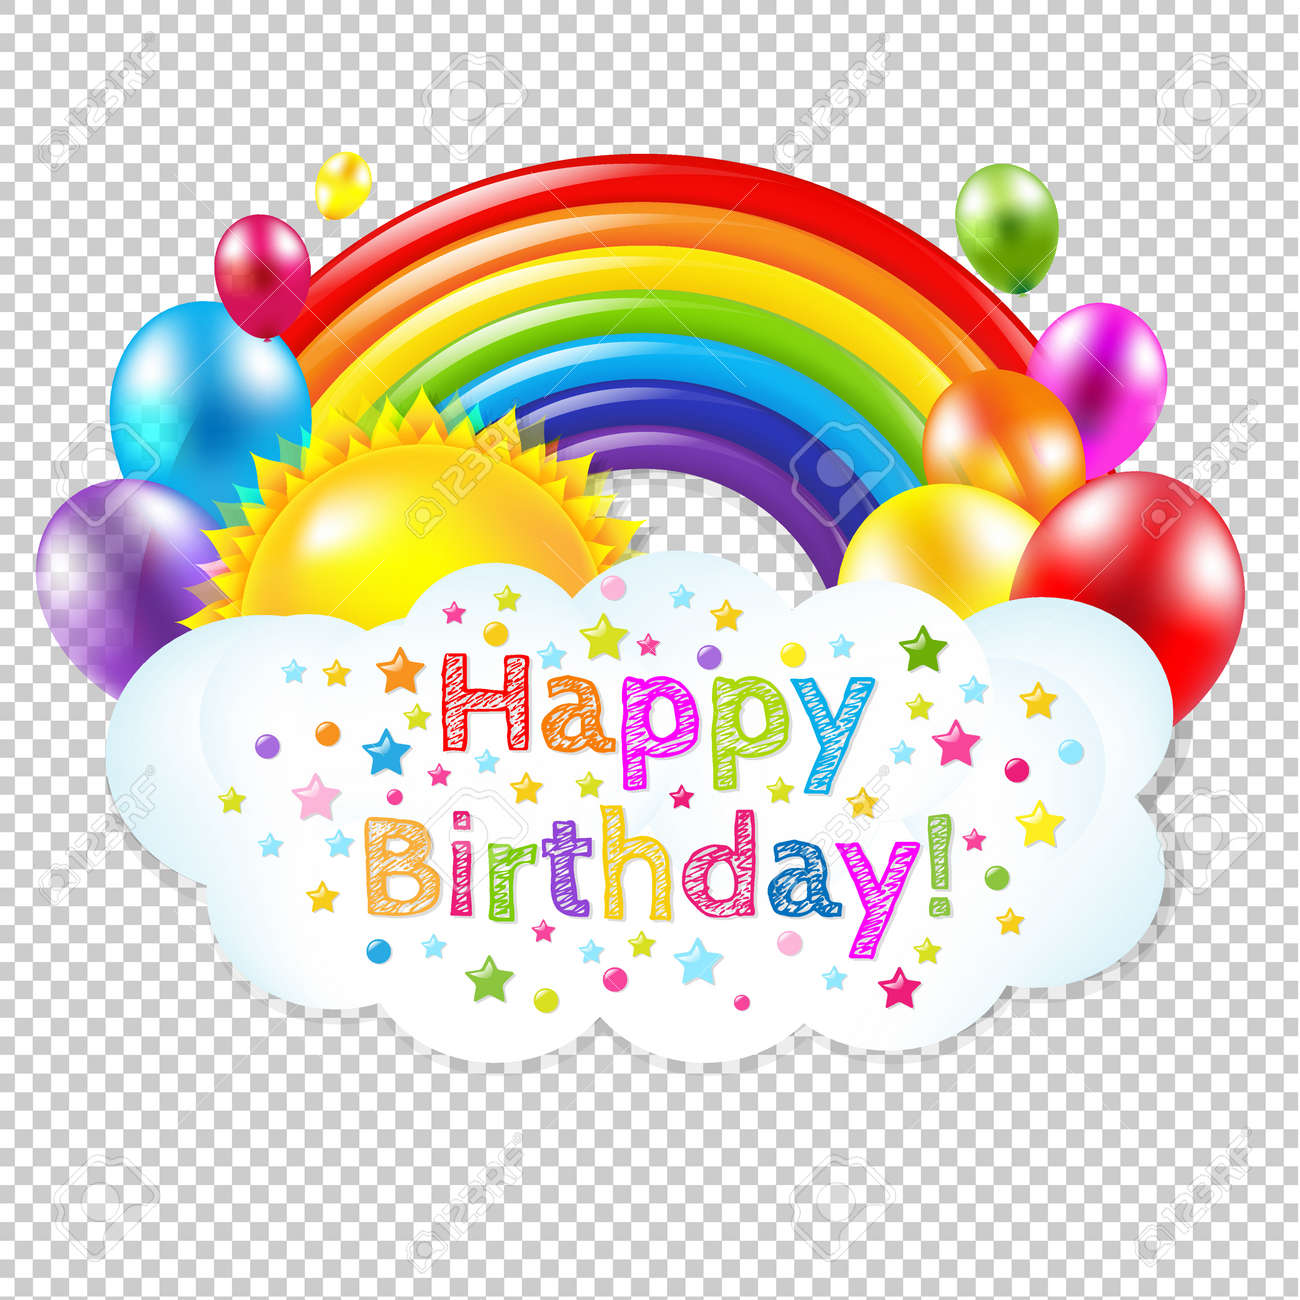 Happy Birthday Banner Banner With Rainbow Isolated, Isolated on Transparent Background, With Gradient Mesh, Vector Illustration - 57247690